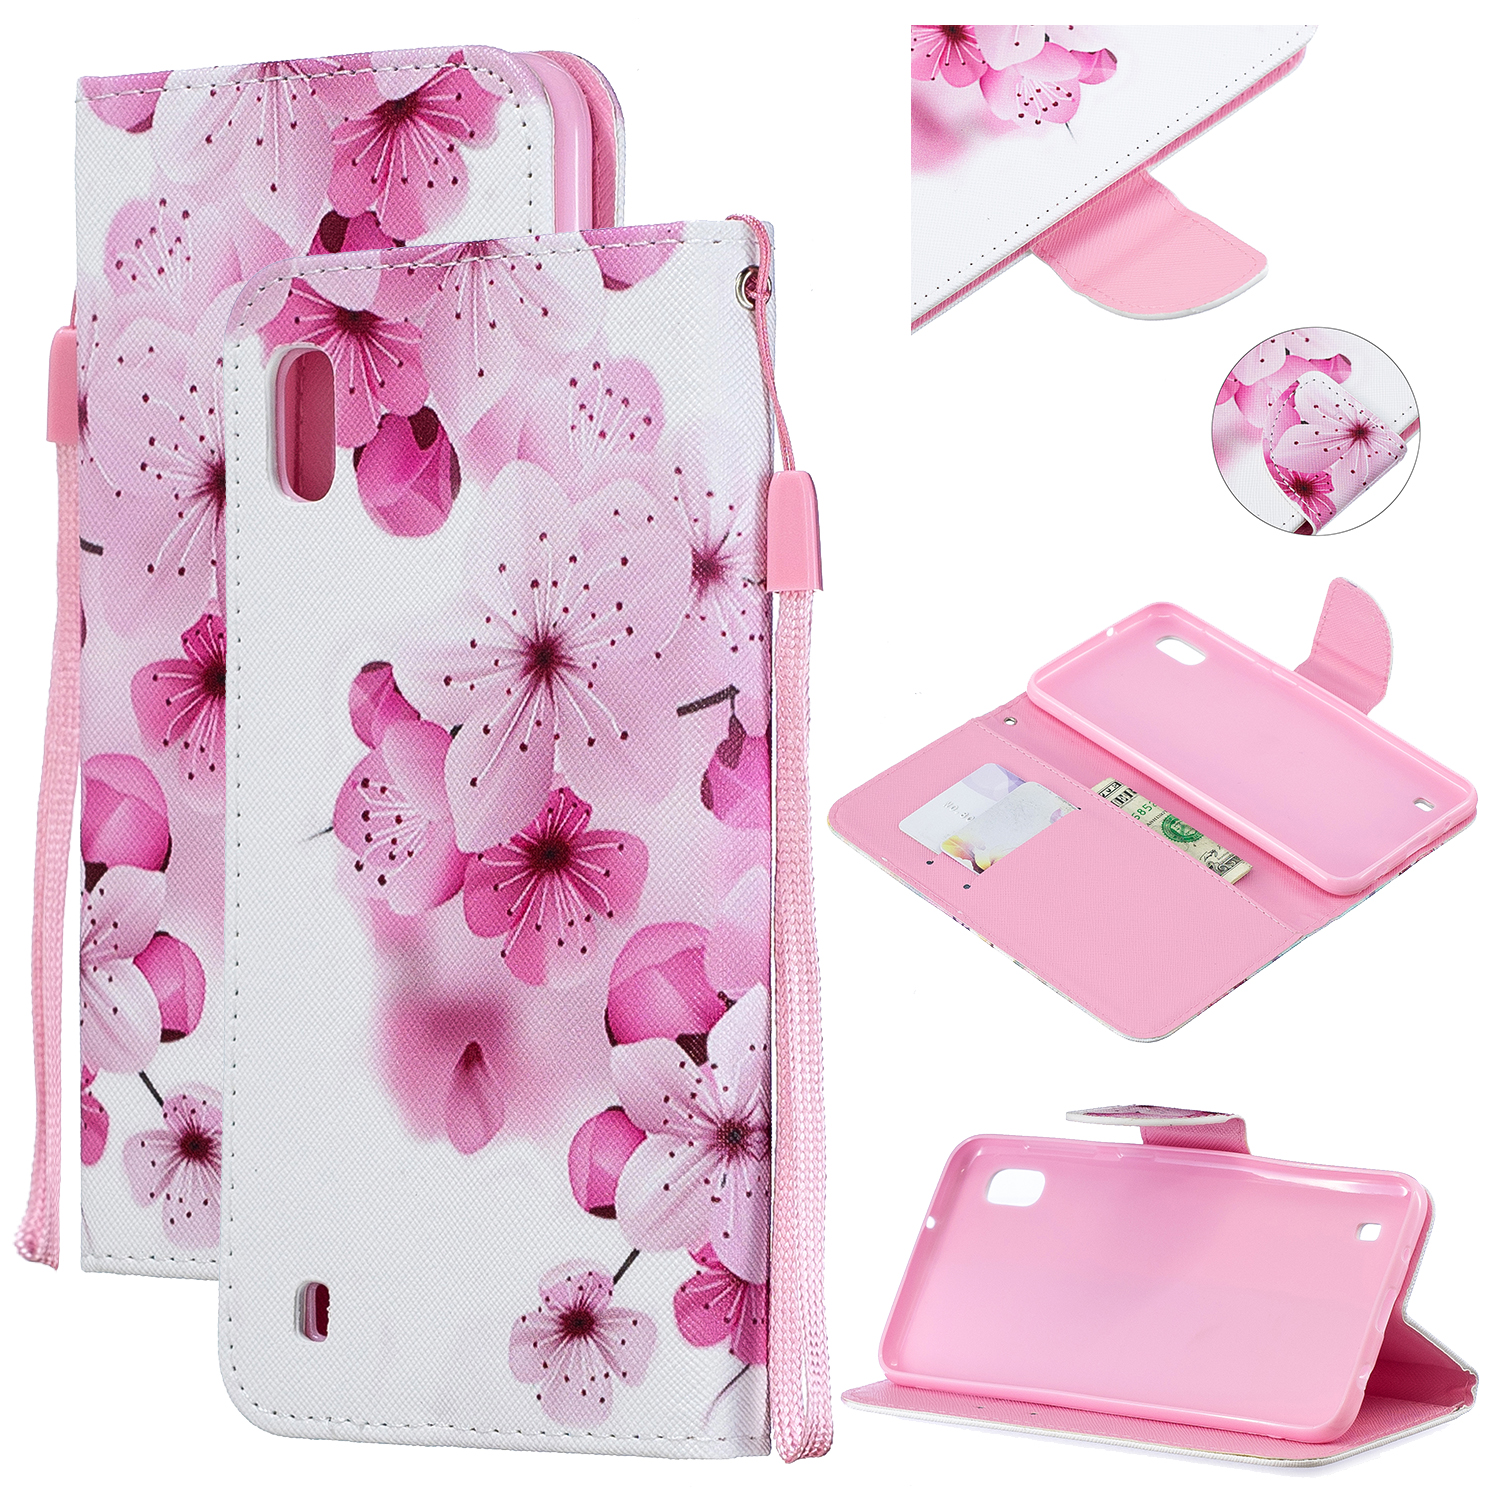 For Samsung A10/A20/A30 Smartphone Case PU Leather Wallet Design Cellphone Cover with Card Holder Stand Available peach blossom